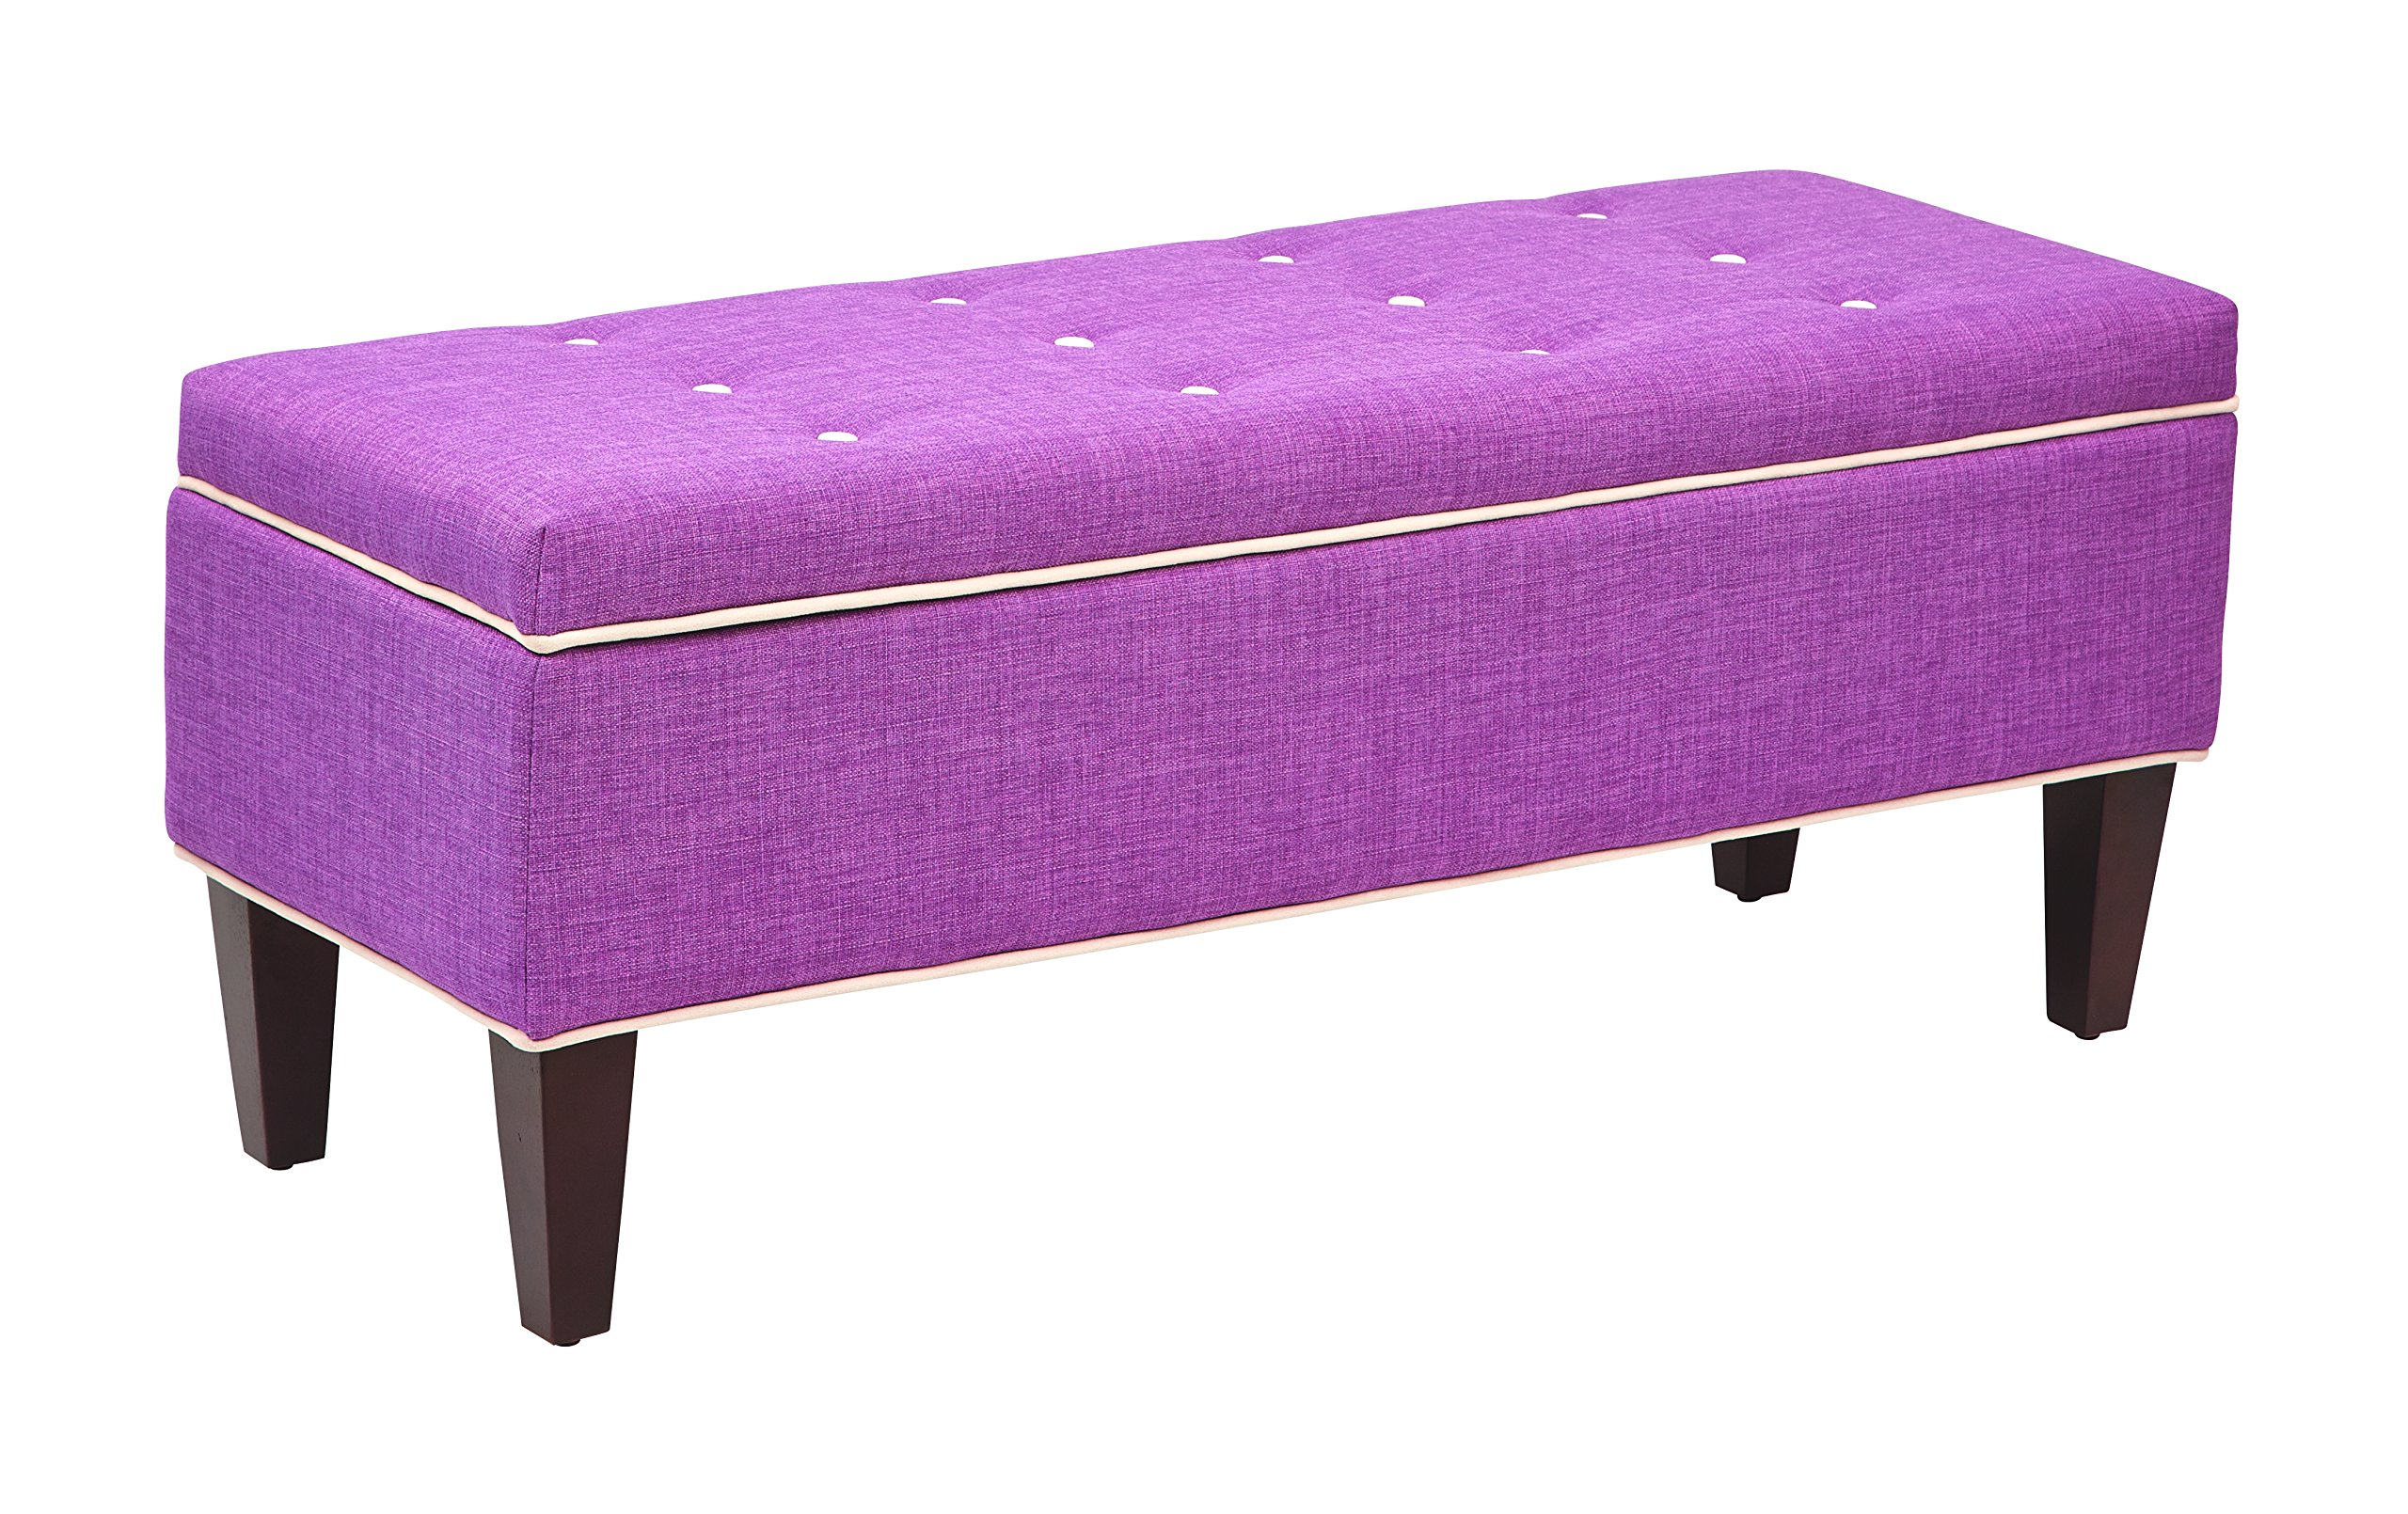 OSP Accents Cambridge Storage Bench, Milford Dahlia